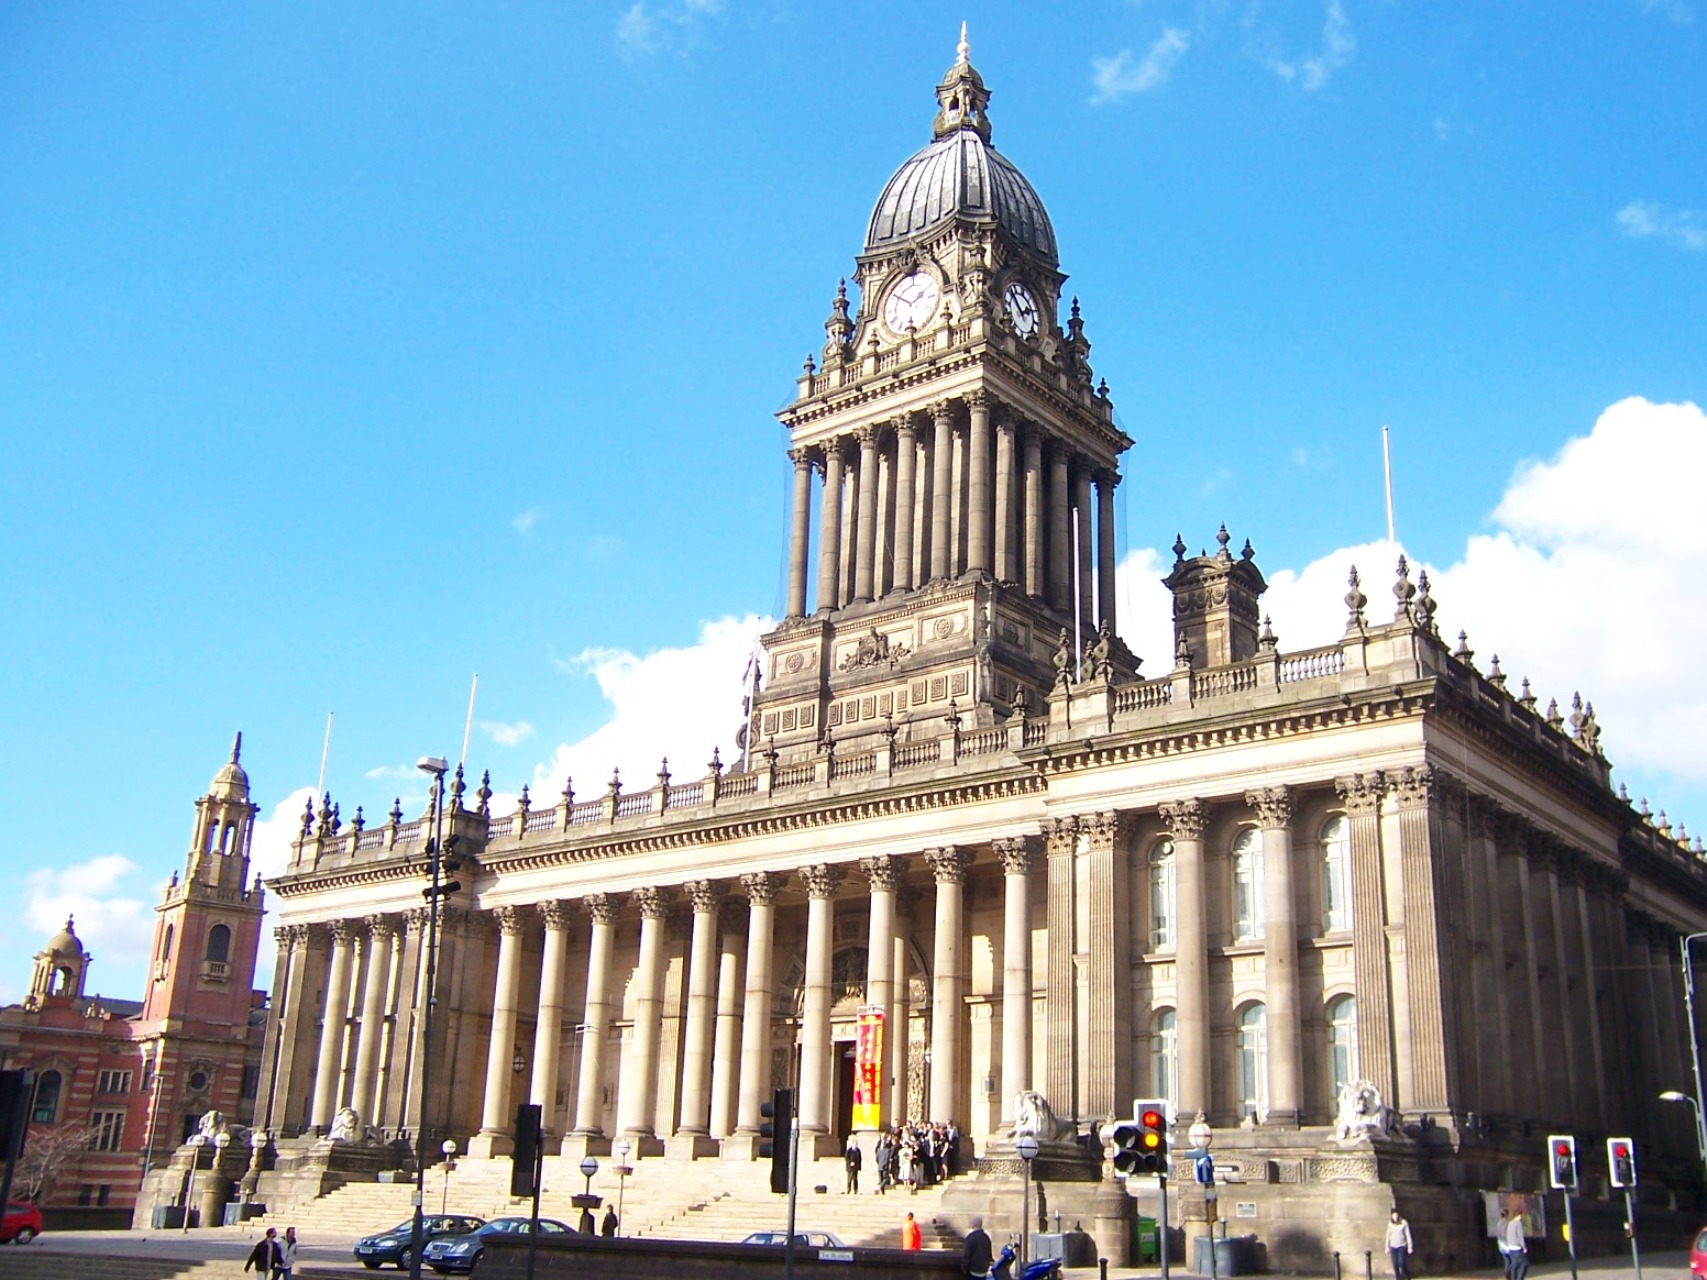 Leeds Town Hall, where Julie and Vicky got married today